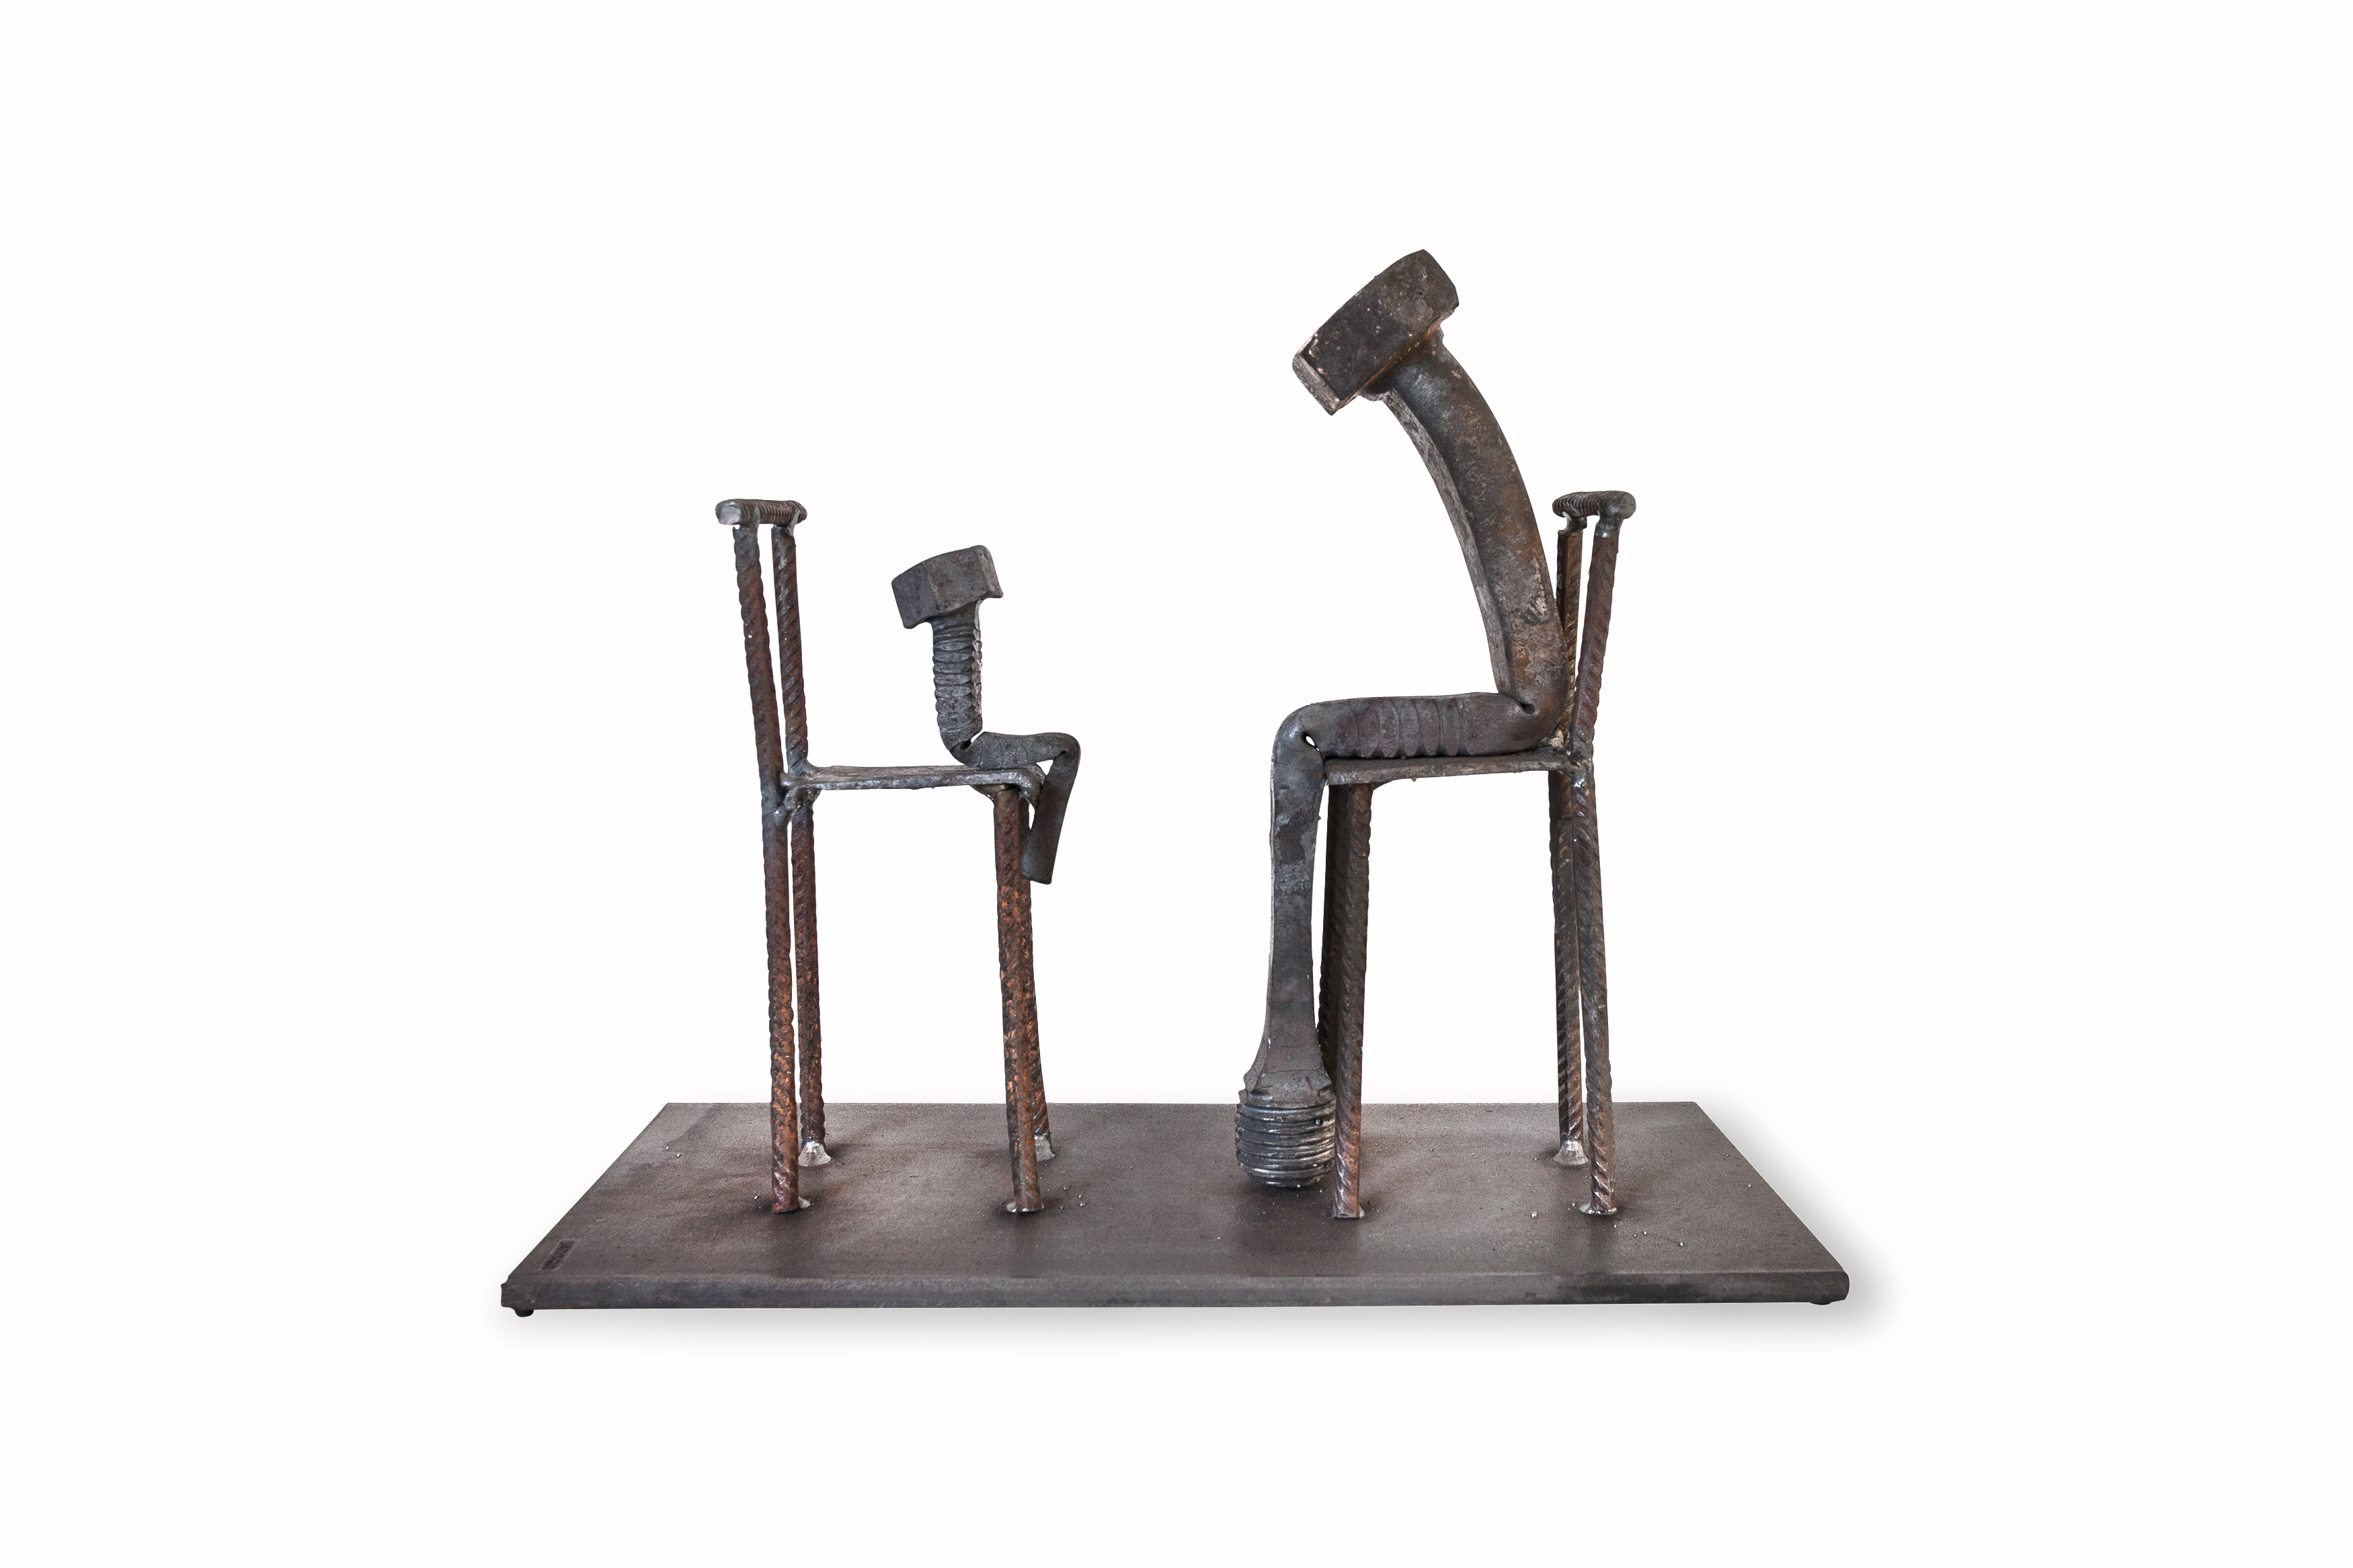 tobbe malm metal art contemporary metal art5